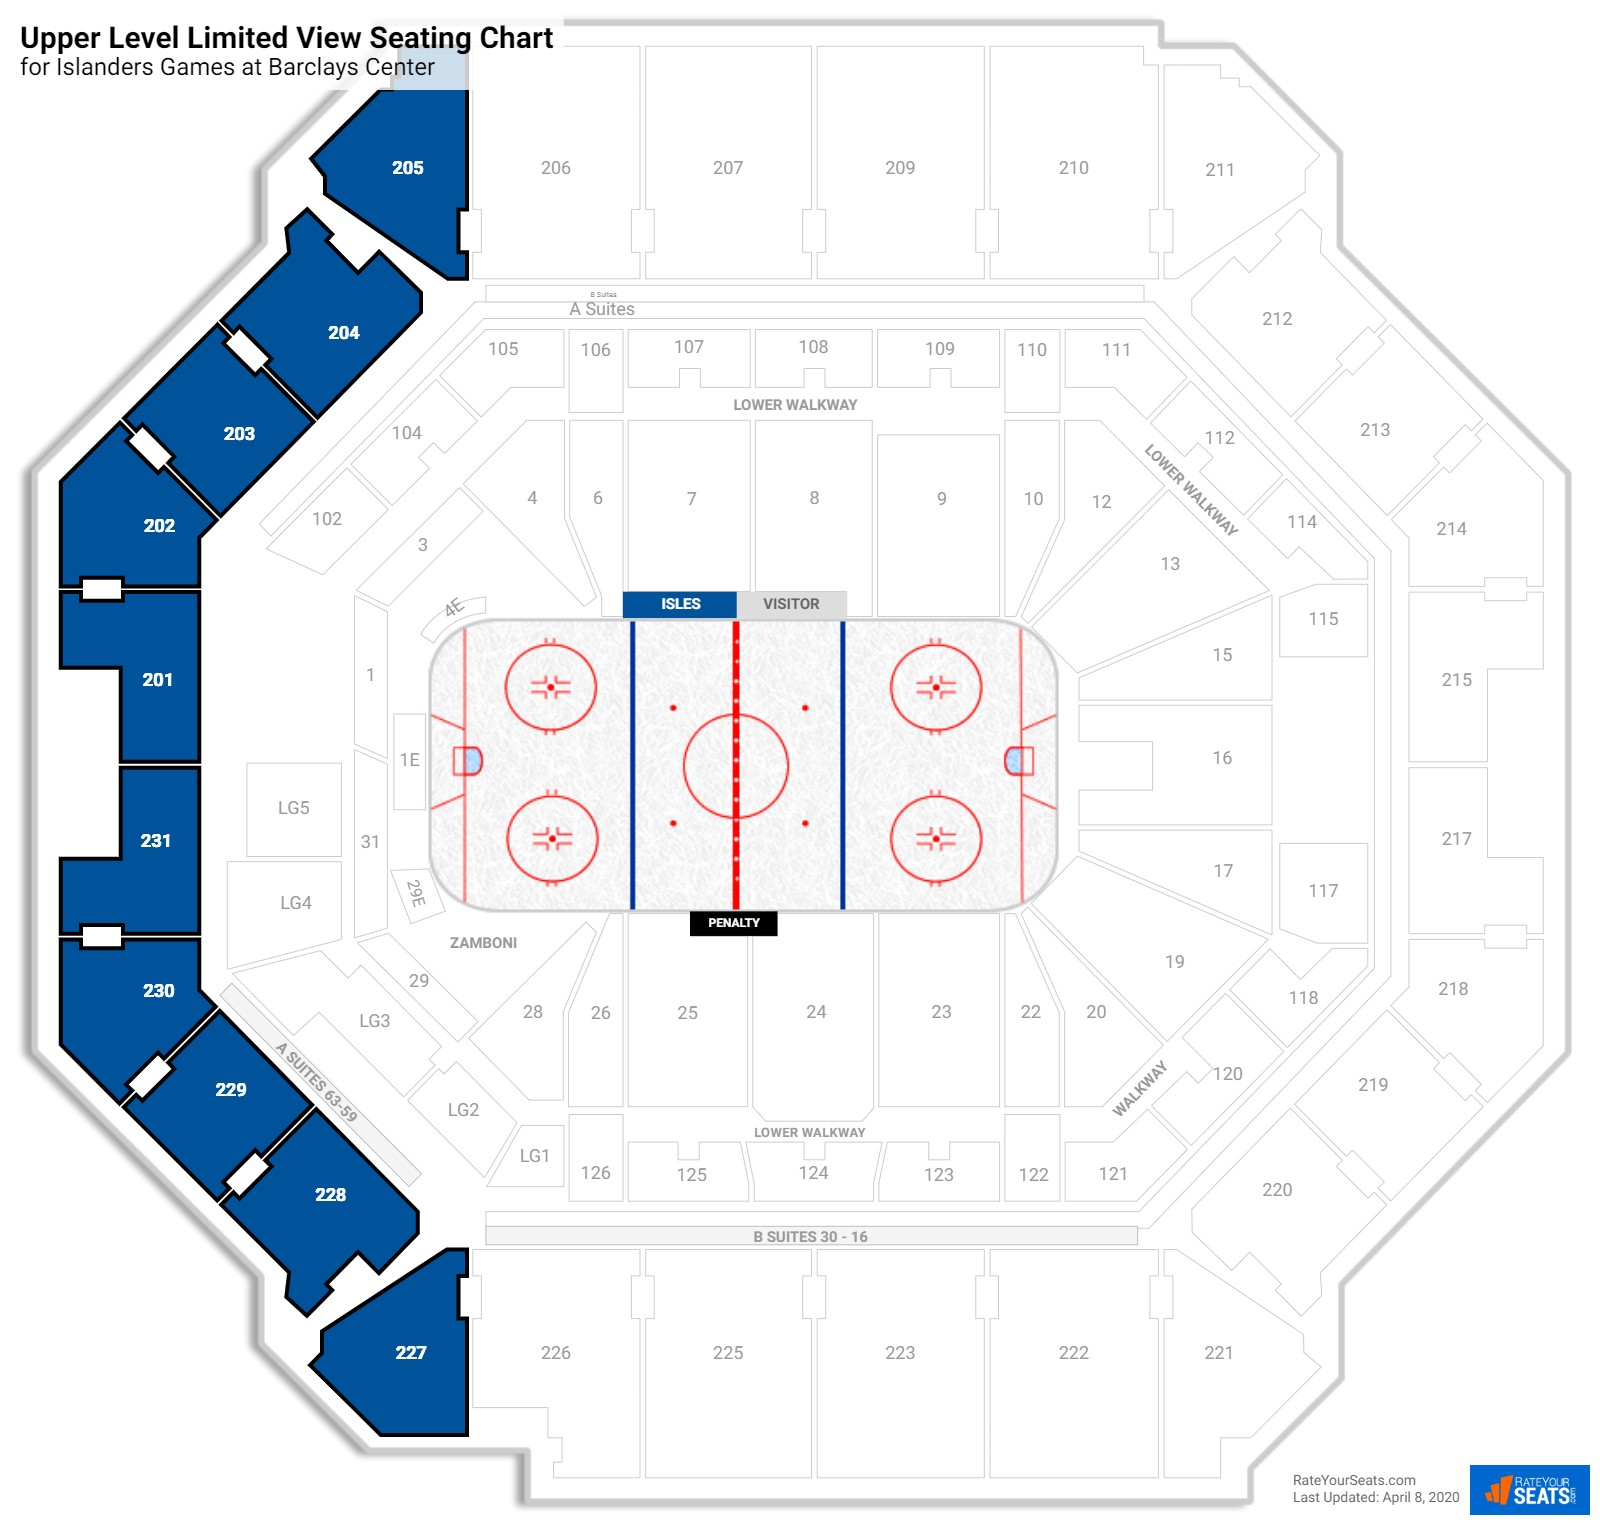 Barclays Center Upper Level Limited View seating chart